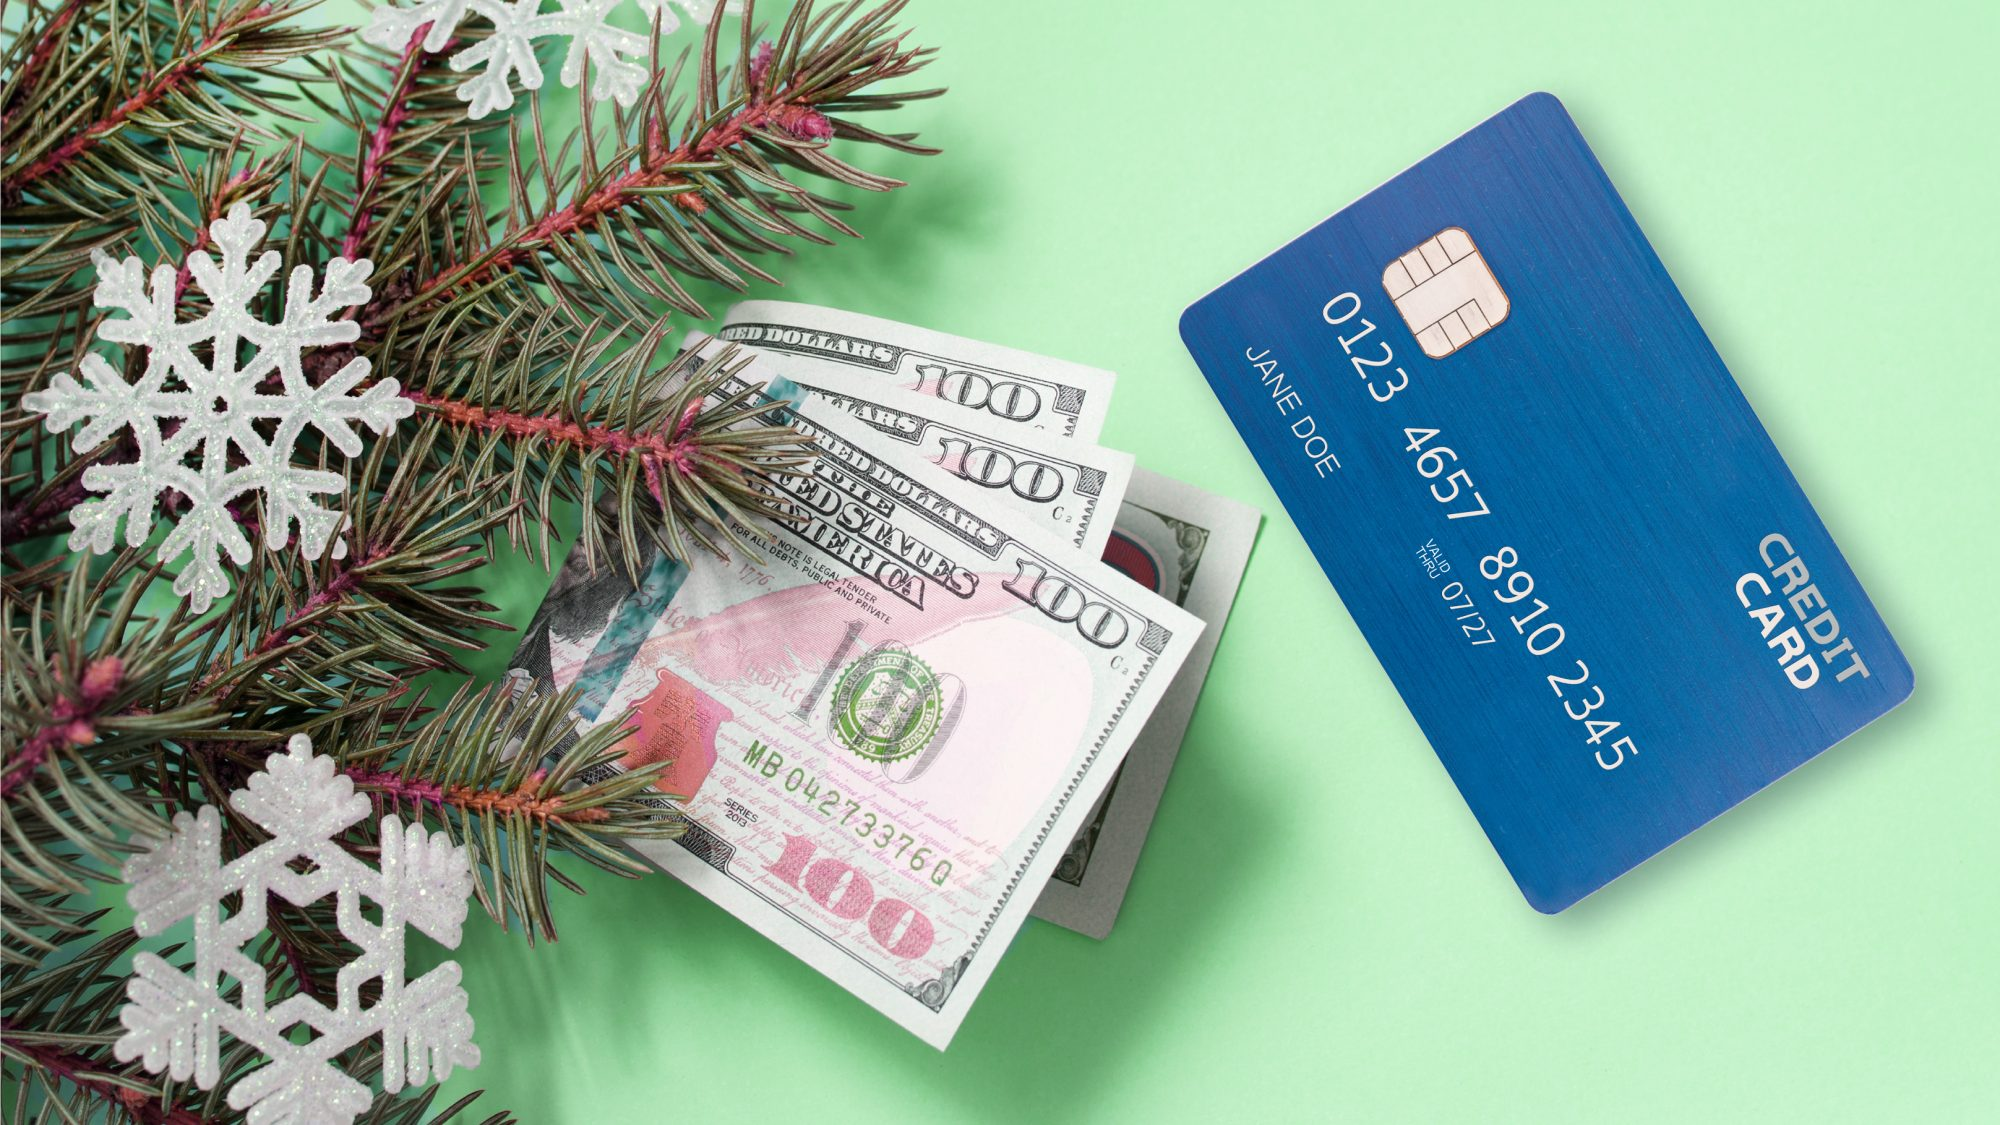 debit-vs-credit-holiday-shopping-tips